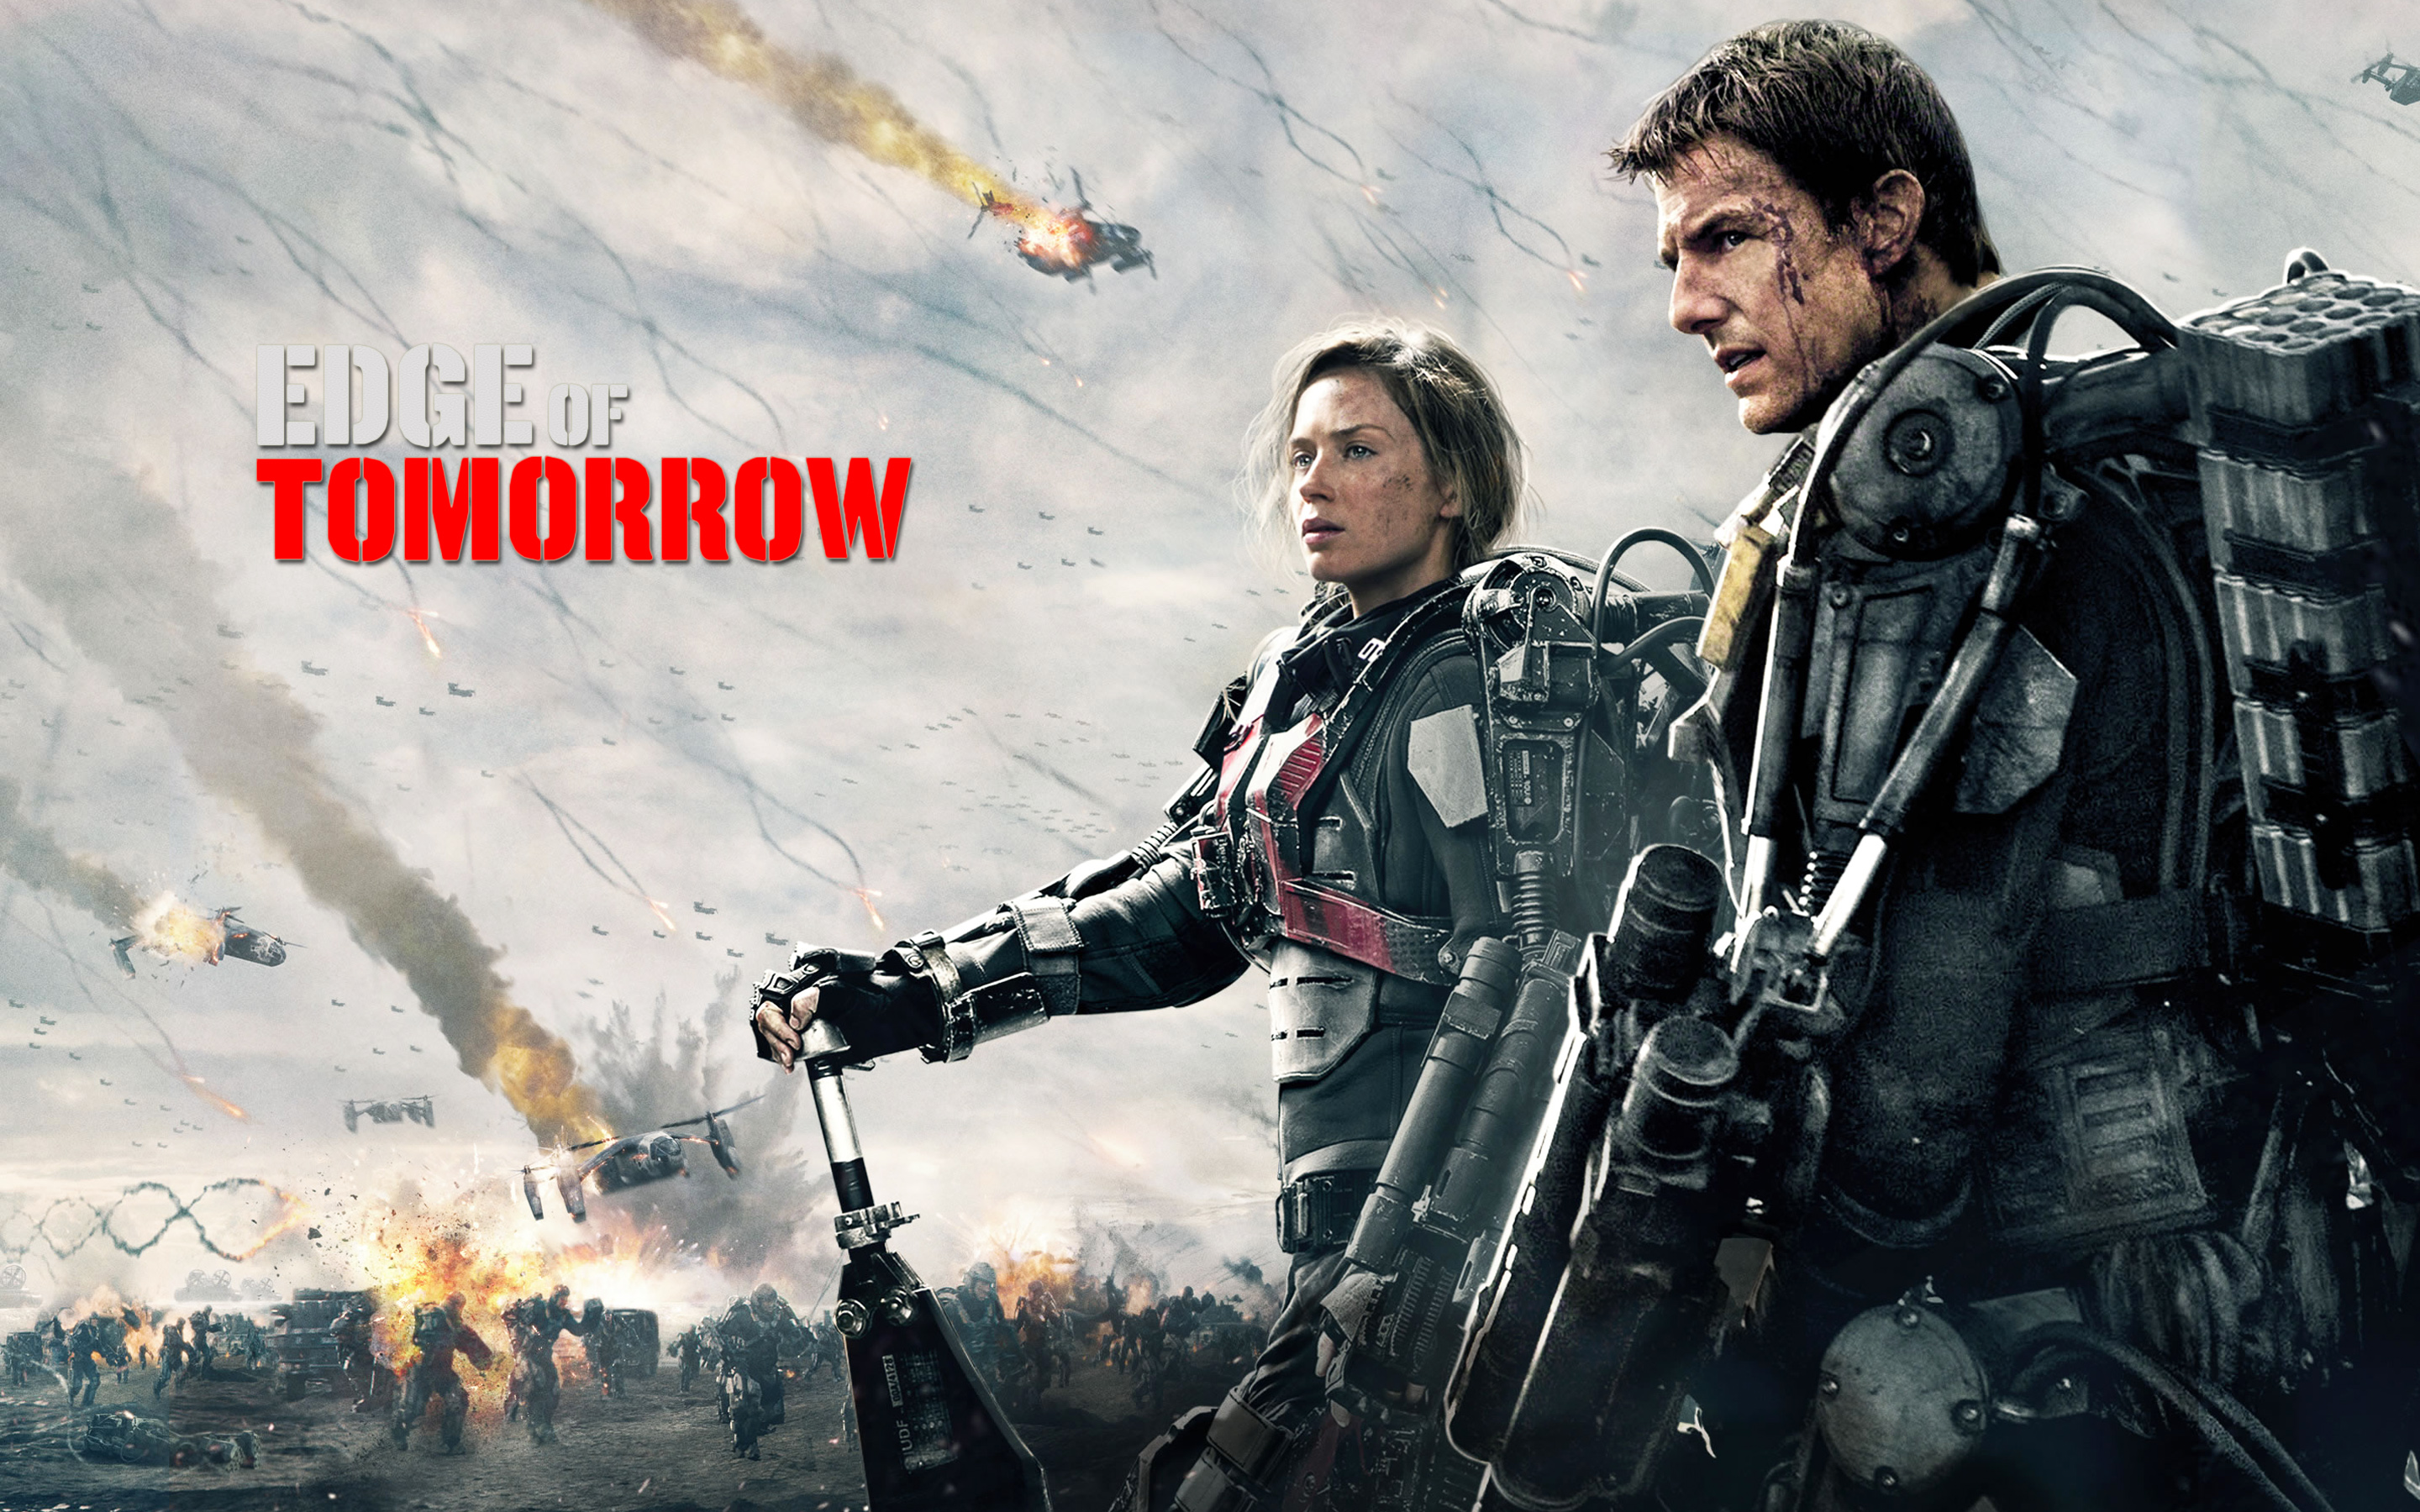 edge-of-tomorrow-2014-poster-wallpaper-2